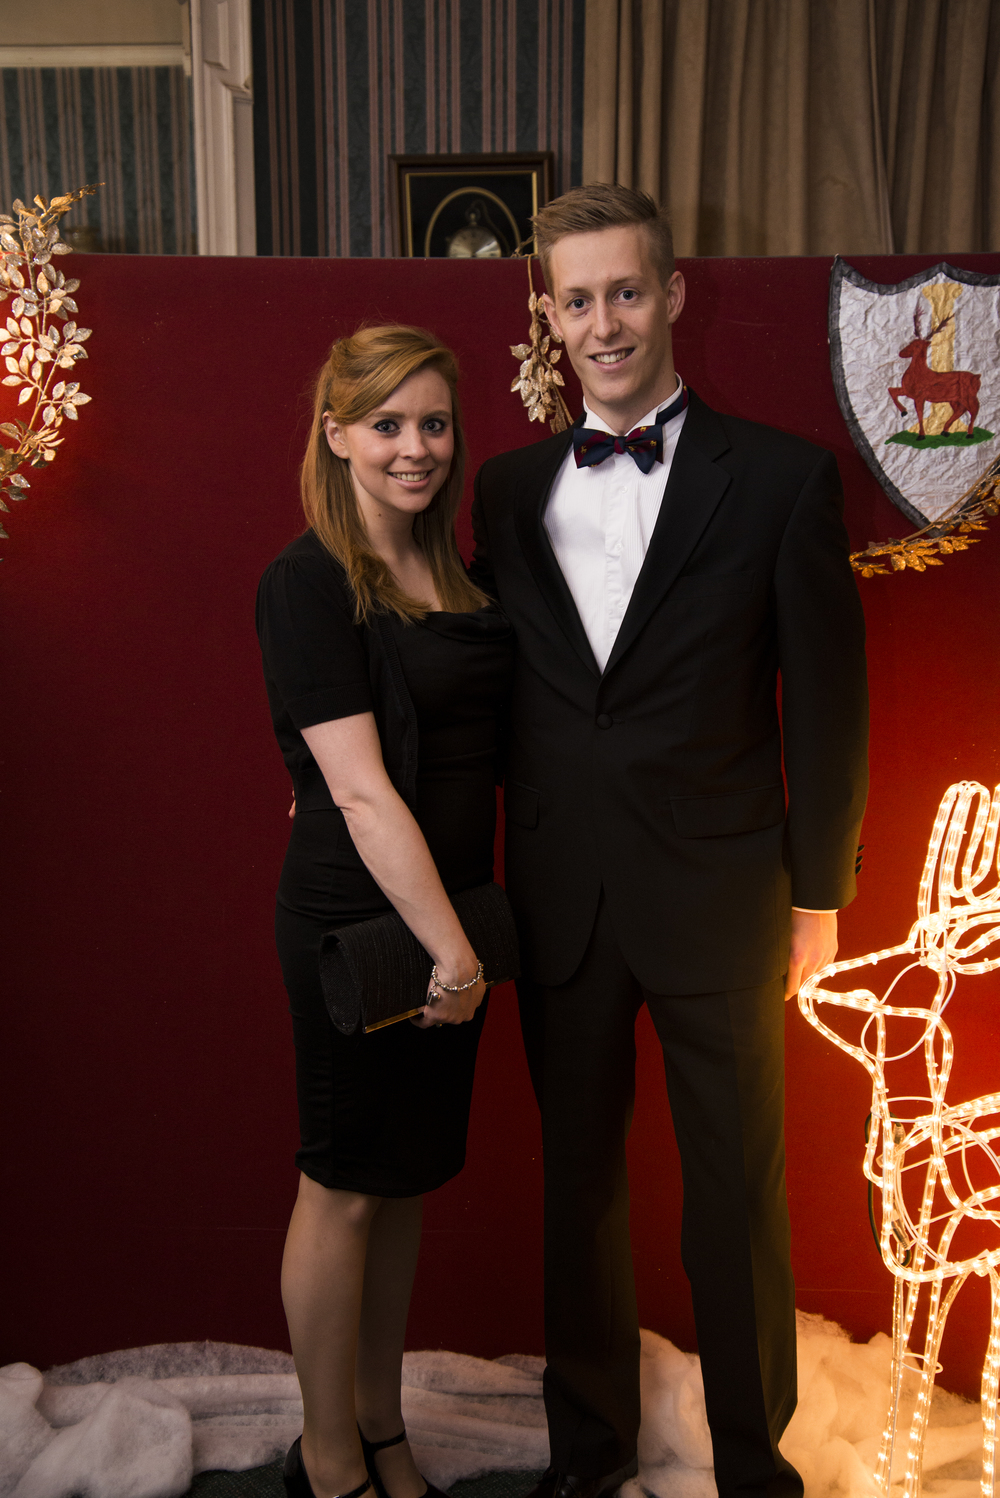 SAUS_winter_ball12121502.jpg